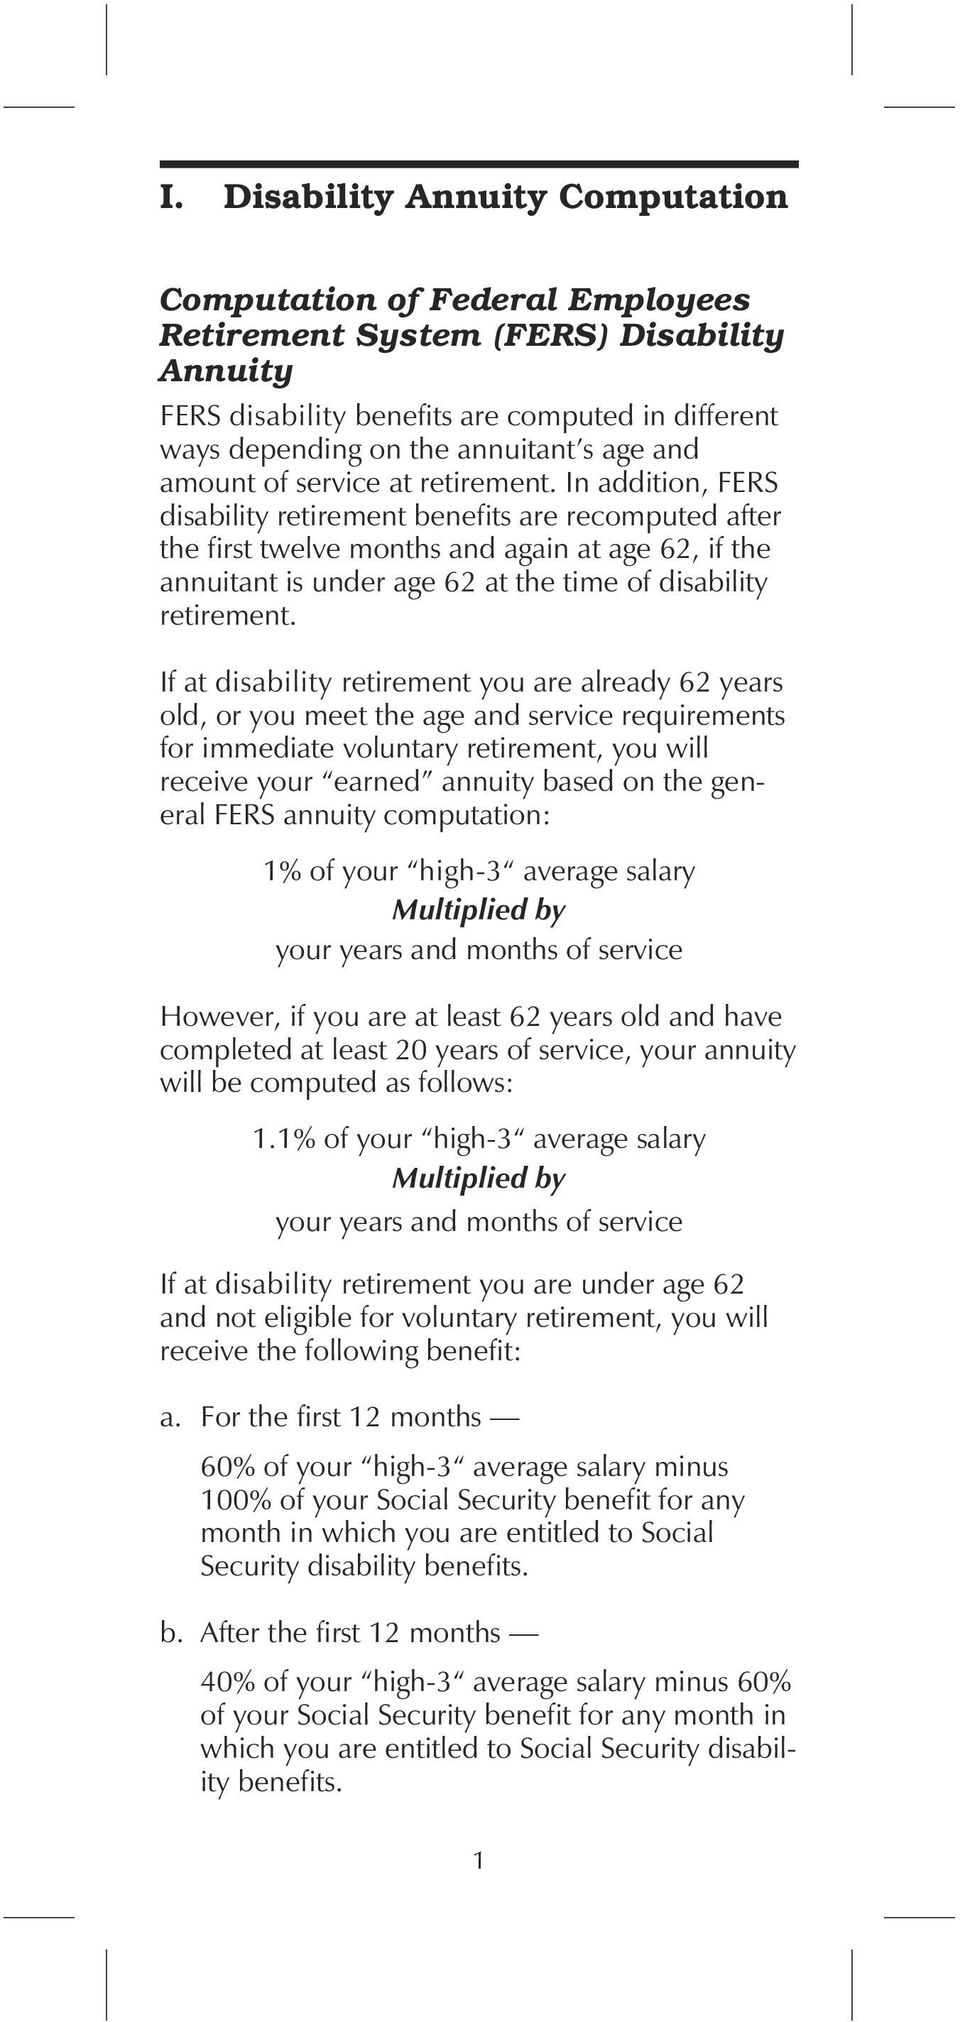 In addition, FERS disability retirement benefits are recomputed after the first twelve months and again at age 62, if the annuitant is under age 62 at the time of disability retirement.